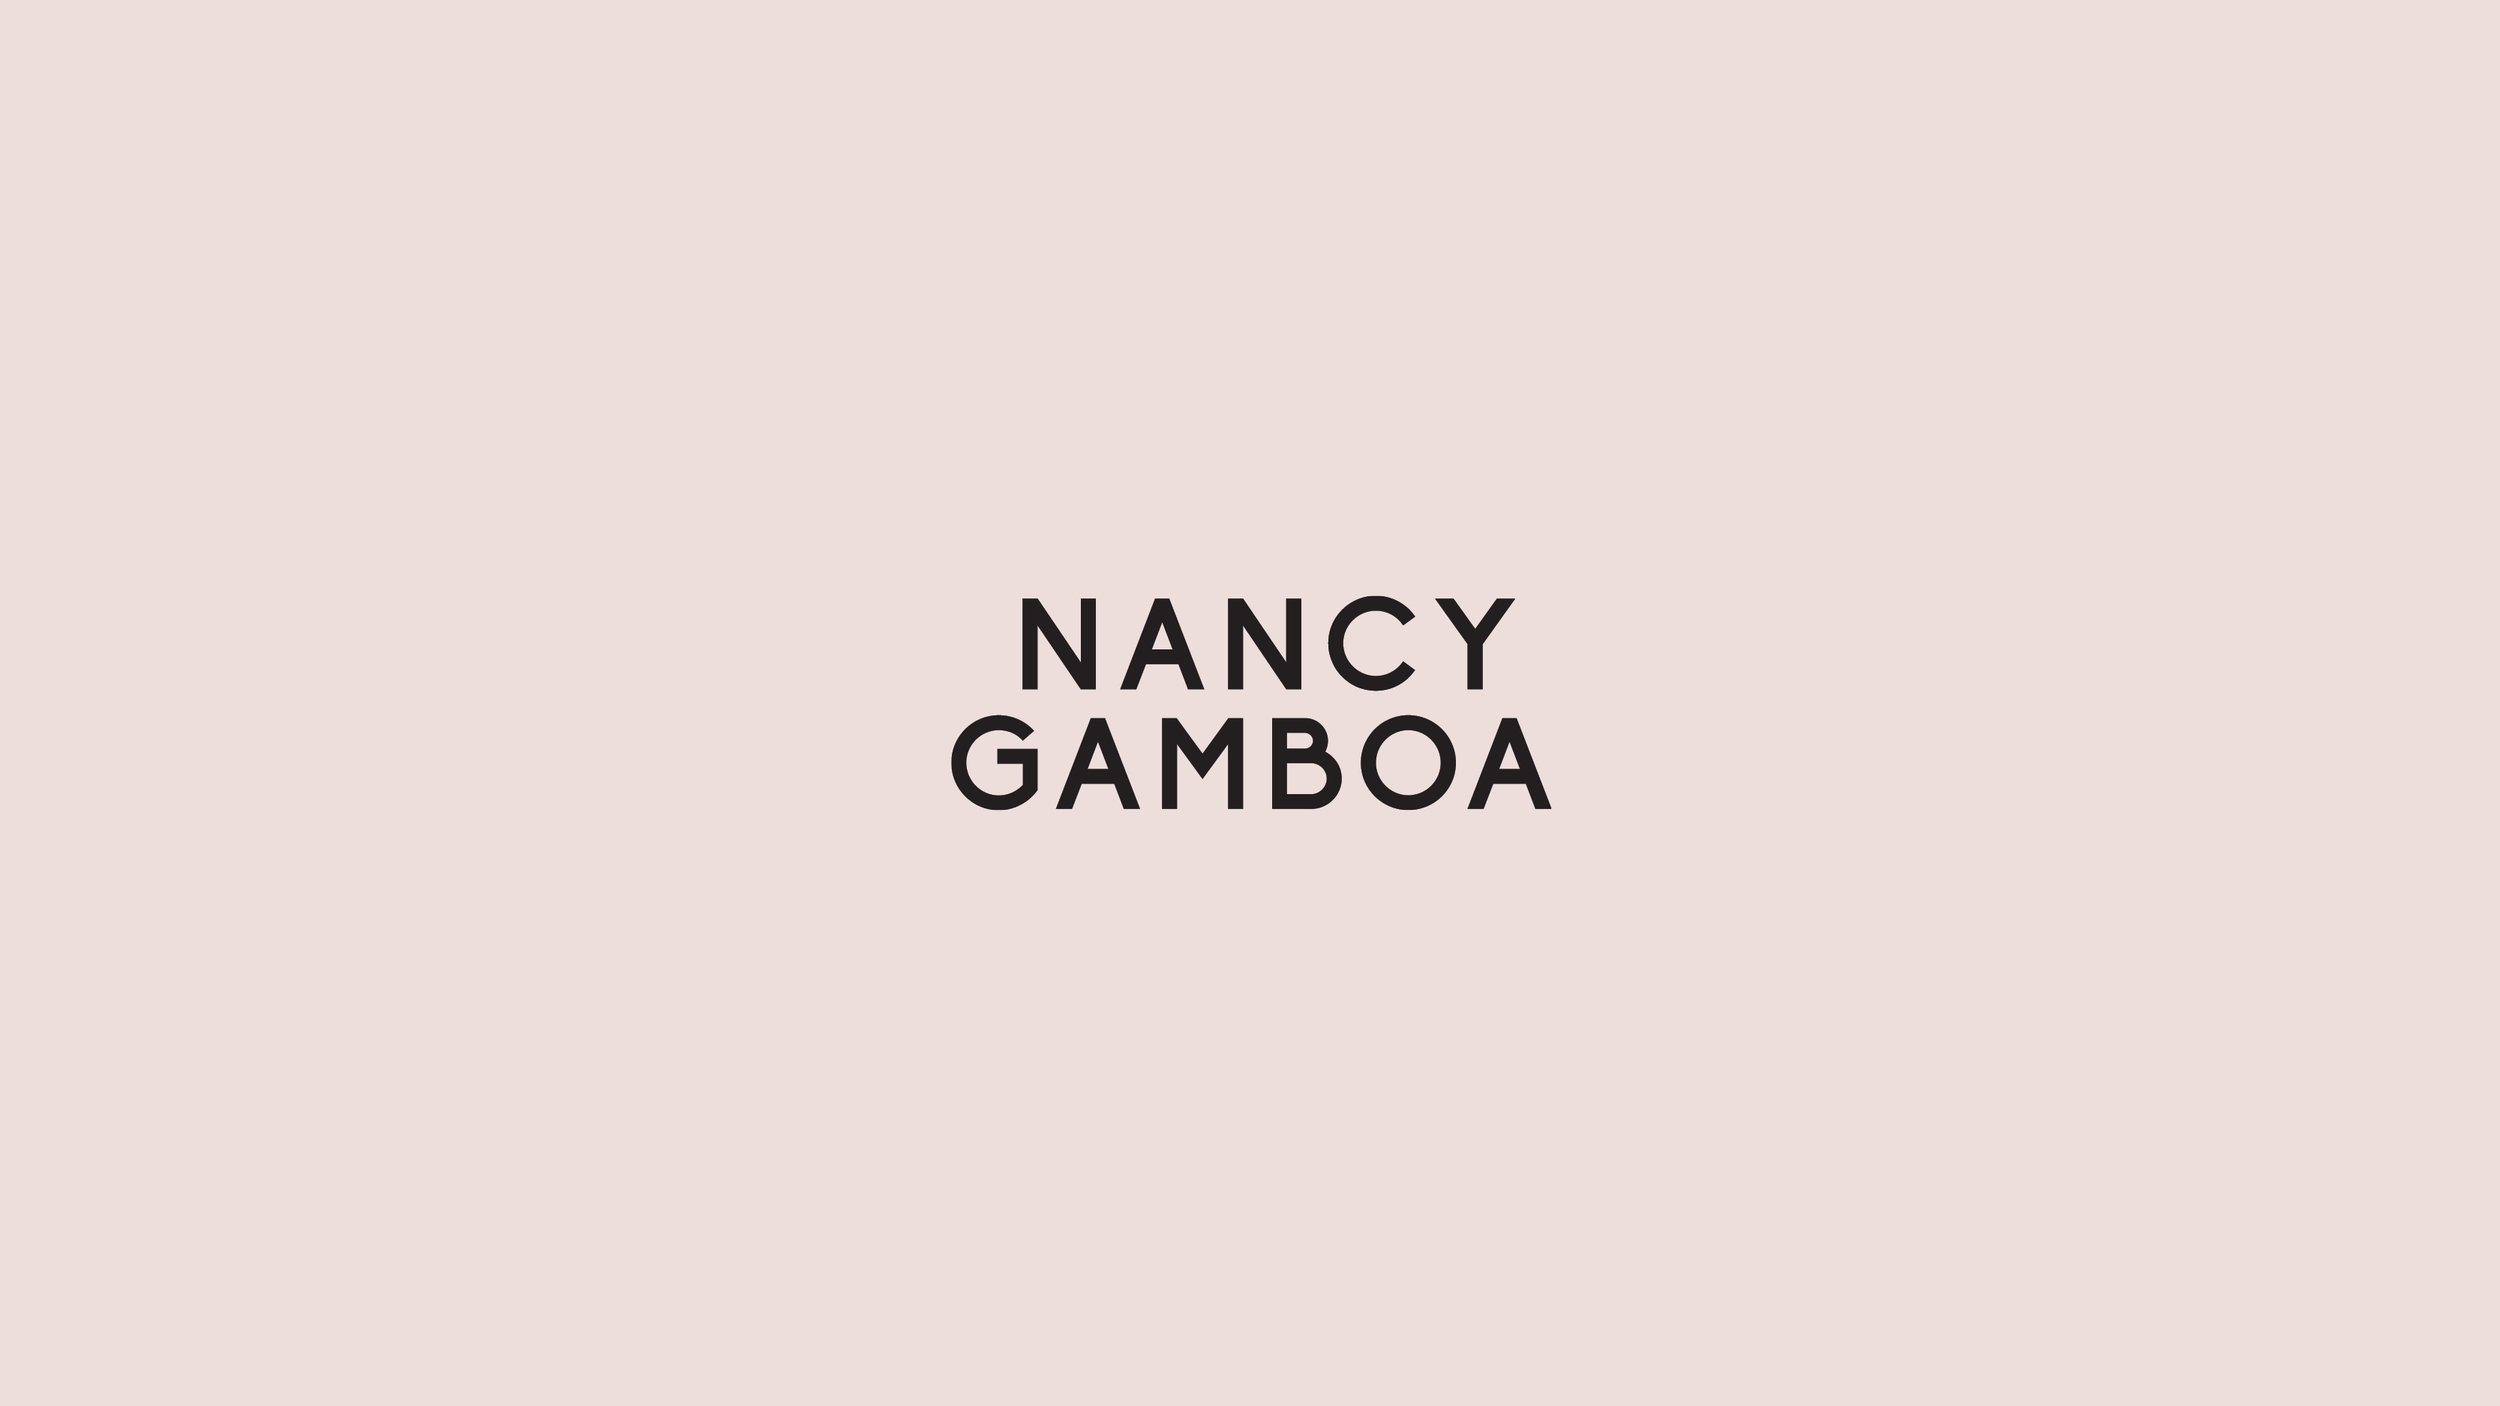 Nancy-Gamboa-logo.jpg